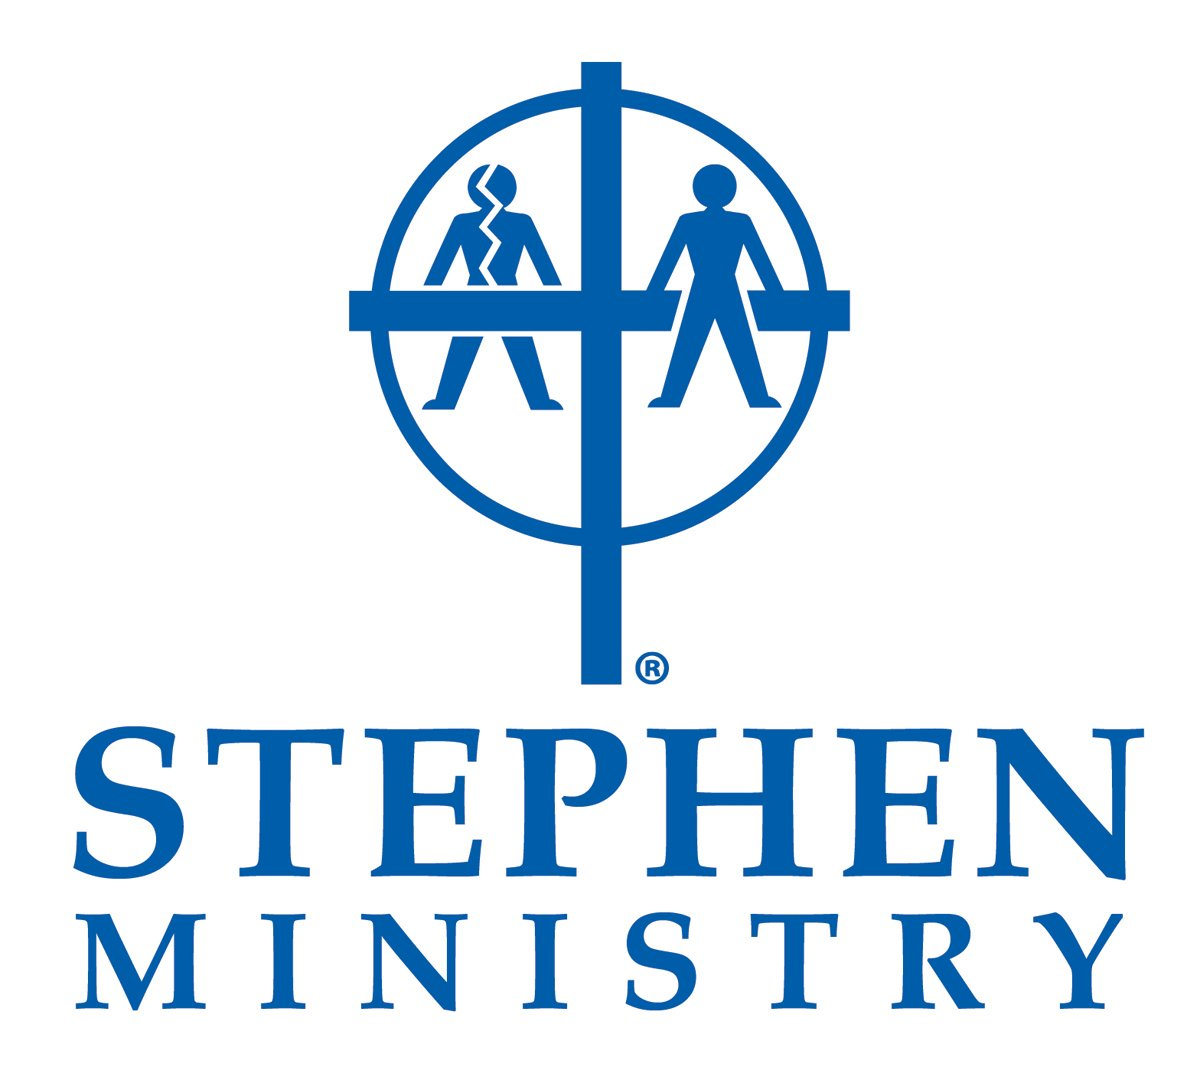 What are Stephen Ministers?